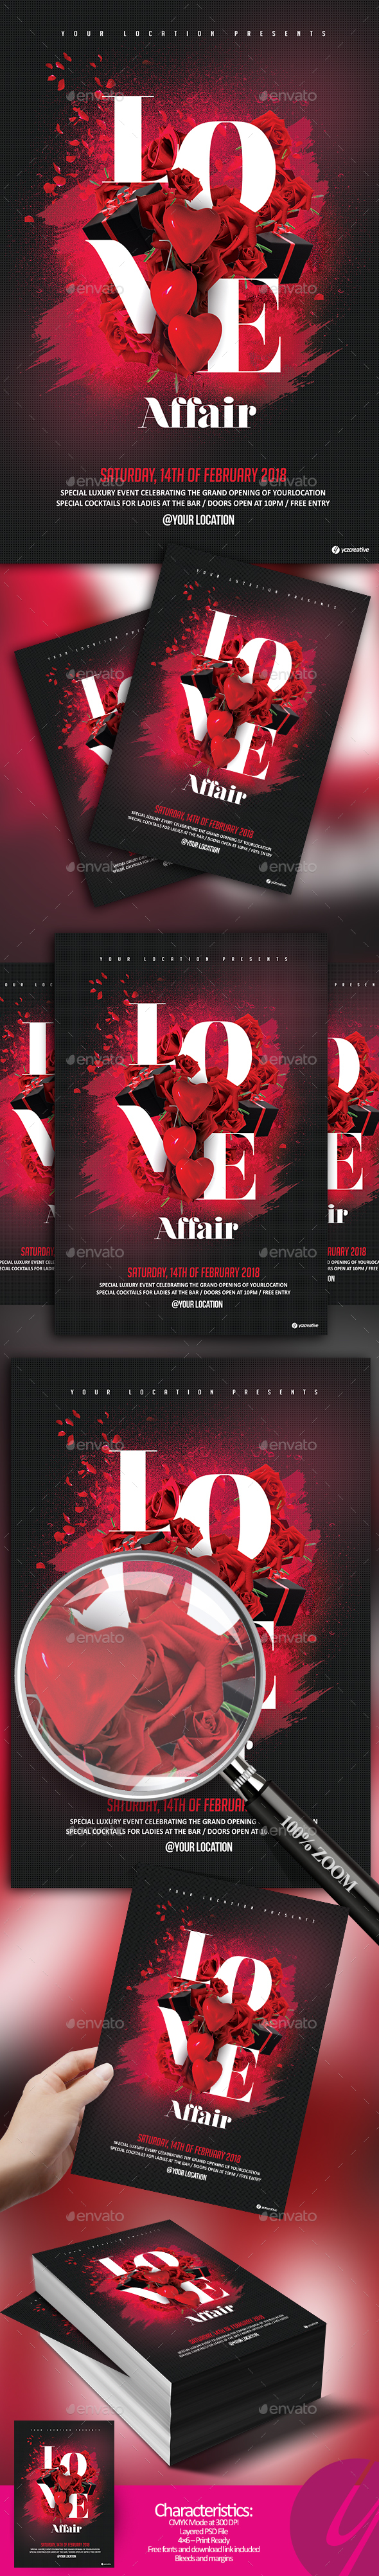 Love Affair Flyer - Clubs & Parties Events